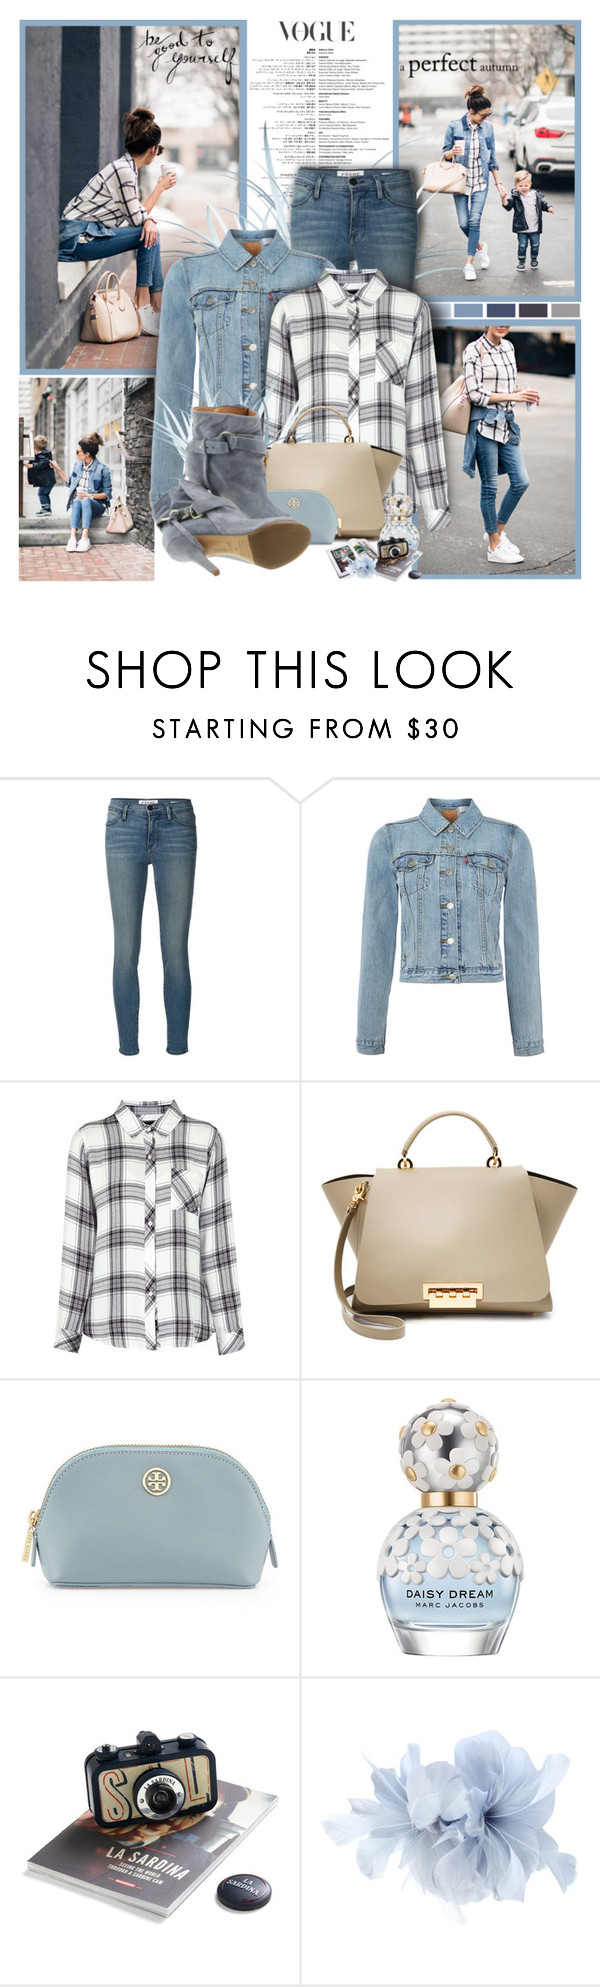 """""""Be good to yourself"""" by winala ❤ liked on Polyvore featuring Frame Denim, Trilogy, Levi's, Rails, ZAC Zac Posen, Tory Burch, Marc Jacobs and Maison Margiela"""